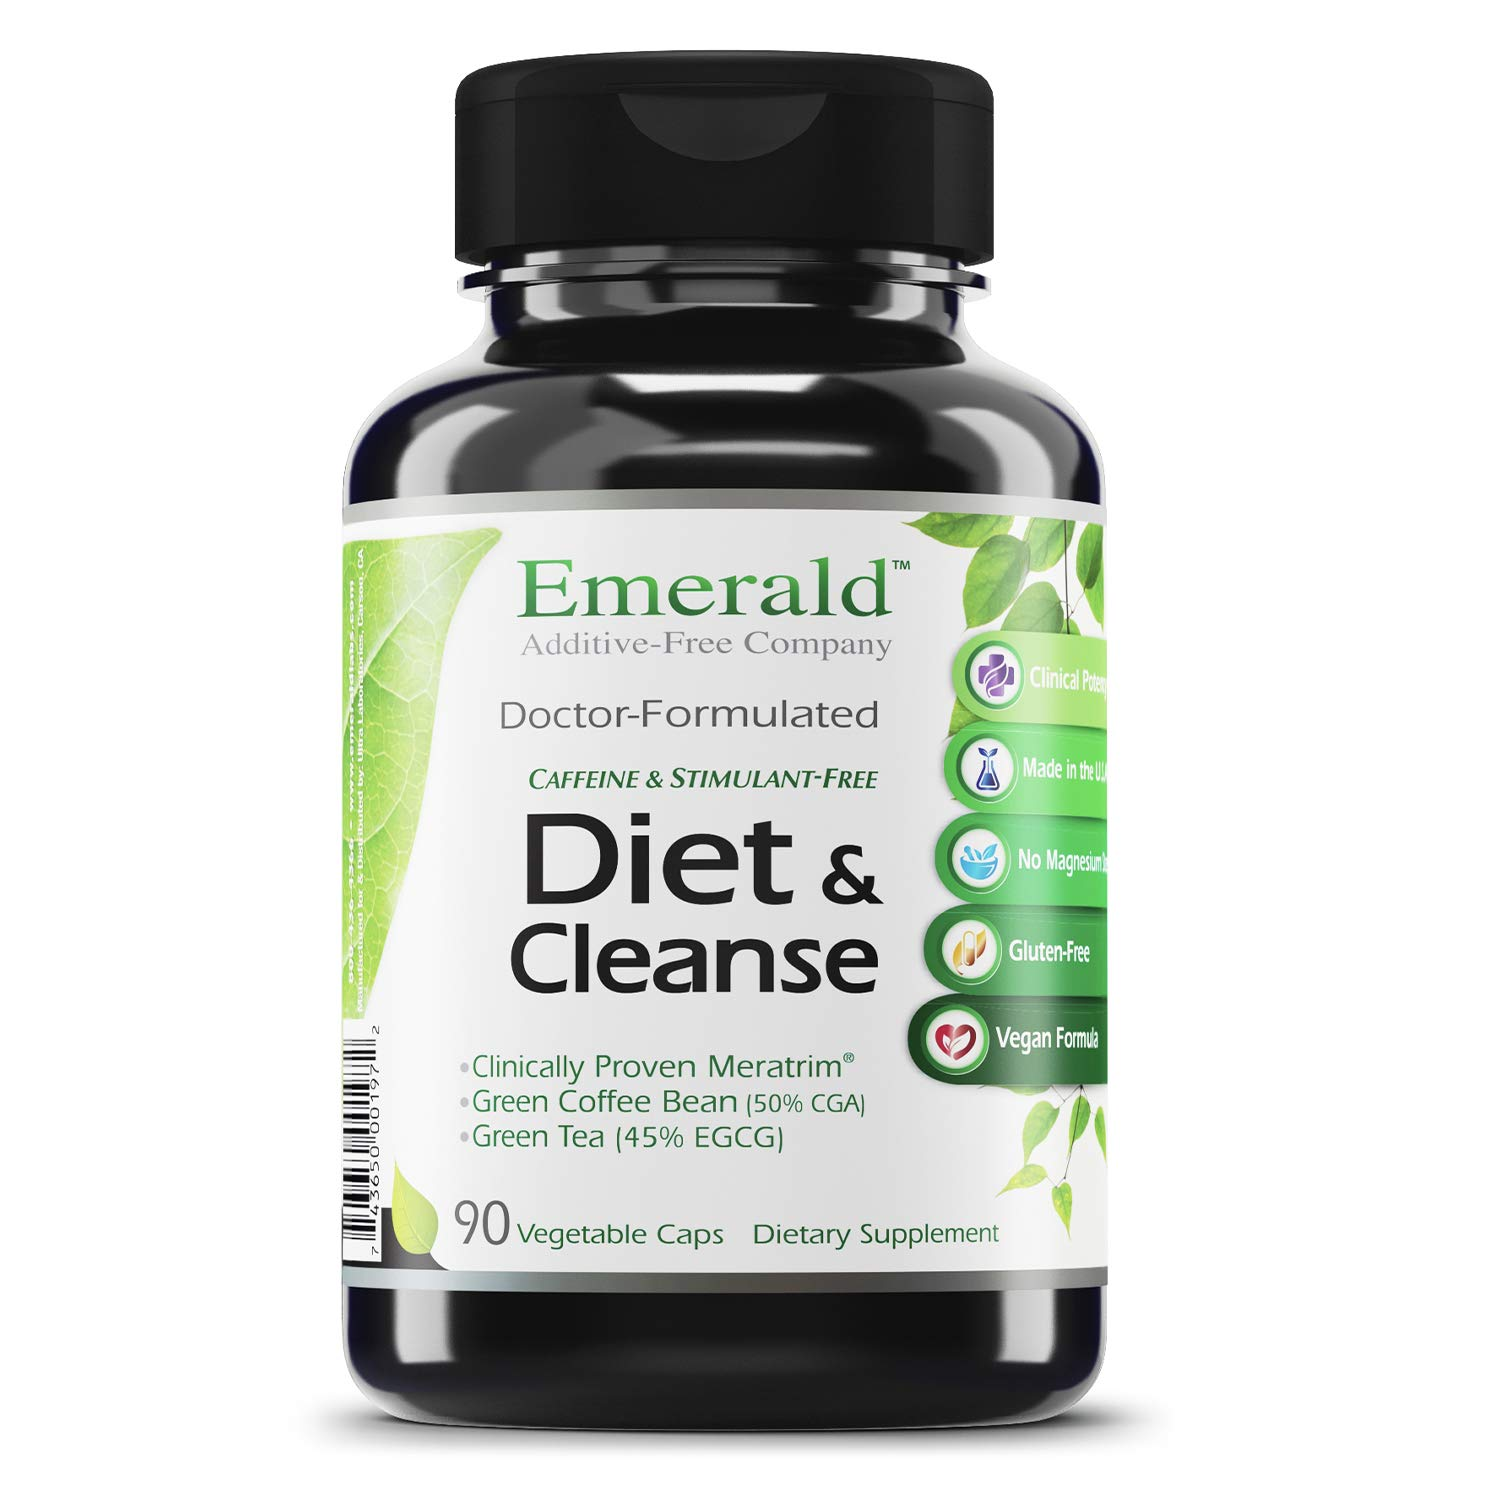 Diet & Cleanse - with Meratrim®, Konjac Root, Green Coffee Bean & Garcinia Cambogia - Weight Loss Support, Helps Cleanse/Detoxify the Body - Emerald Labs (Rainforest) - 90 Vegetable Capsules